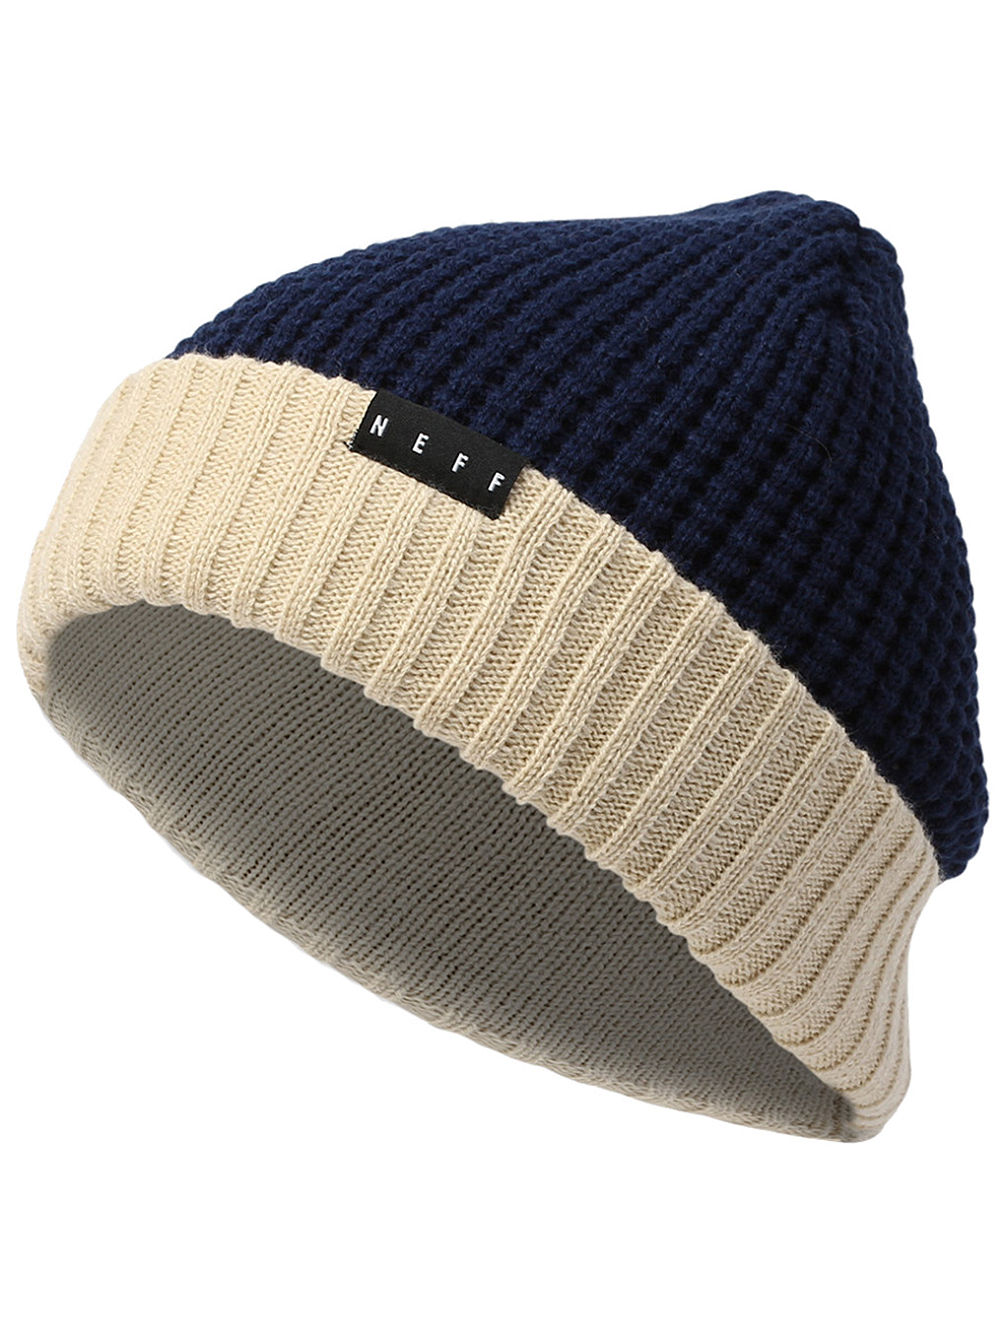 Buy Neff Grit Beanie online at blue-tomato.com 41534fca03a